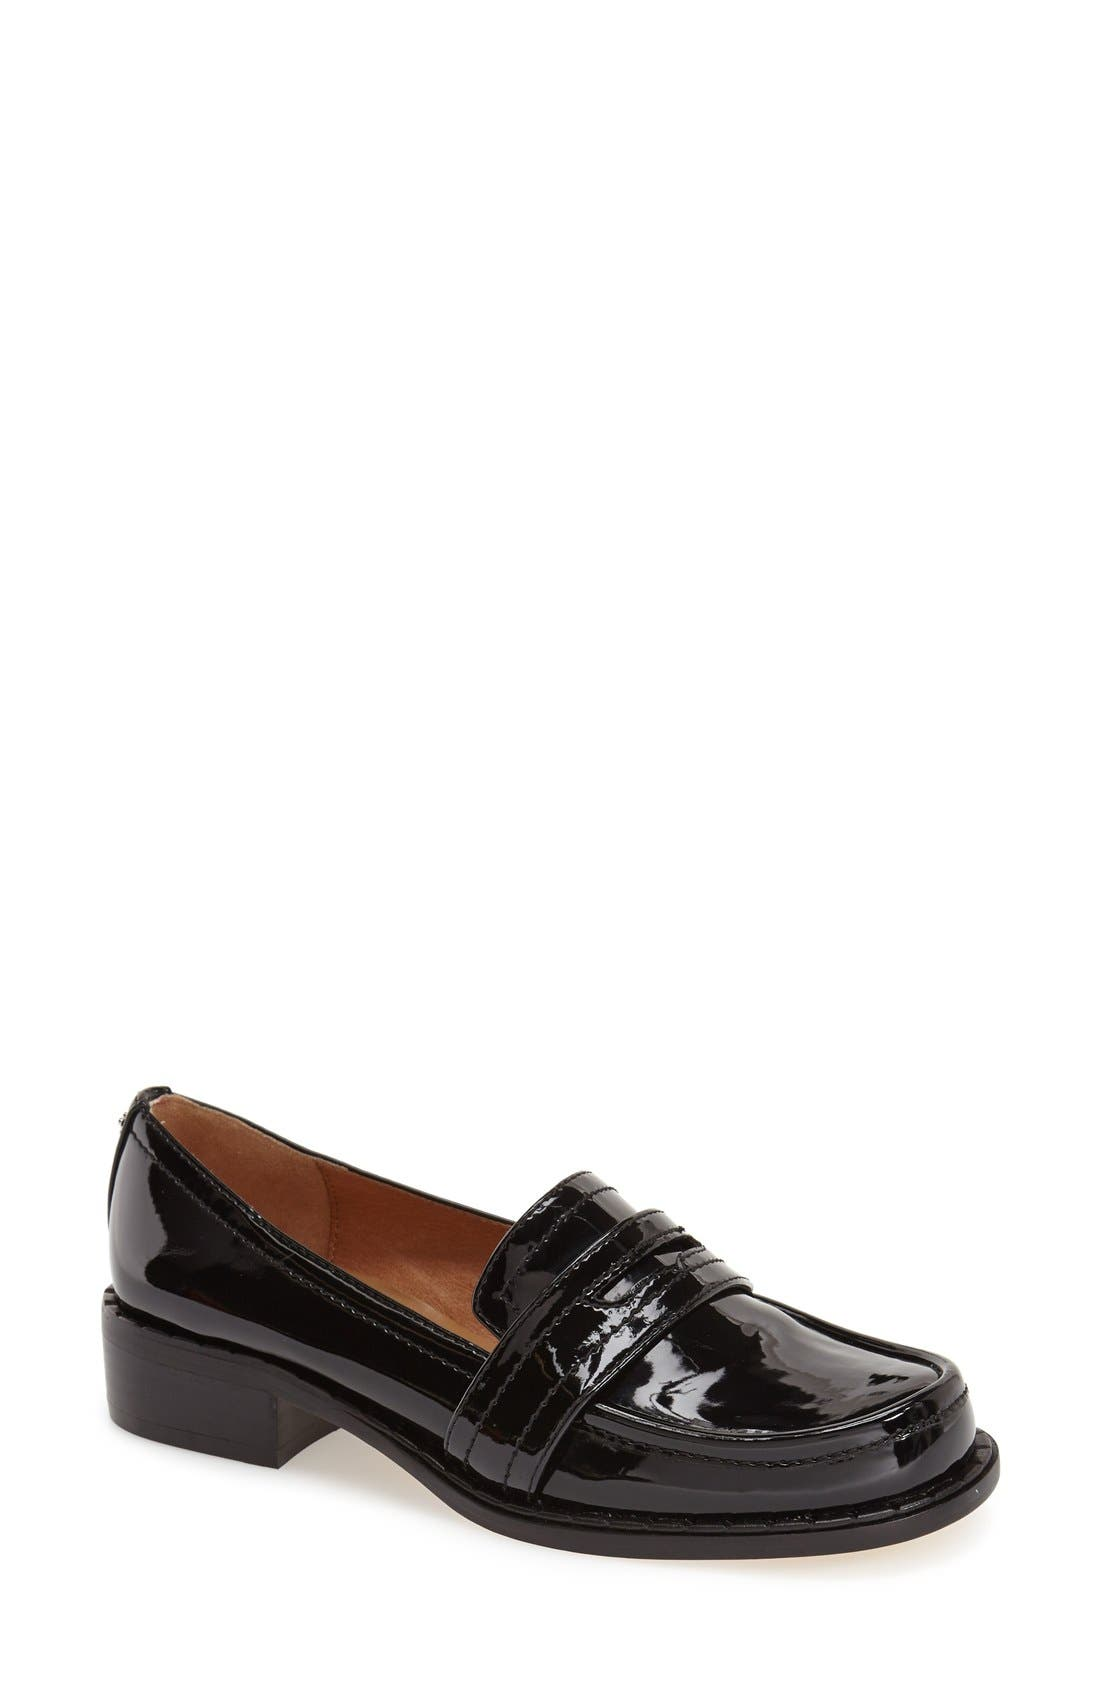 'Mystique' Penny Loafer,                             Main thumbnail 2, color,